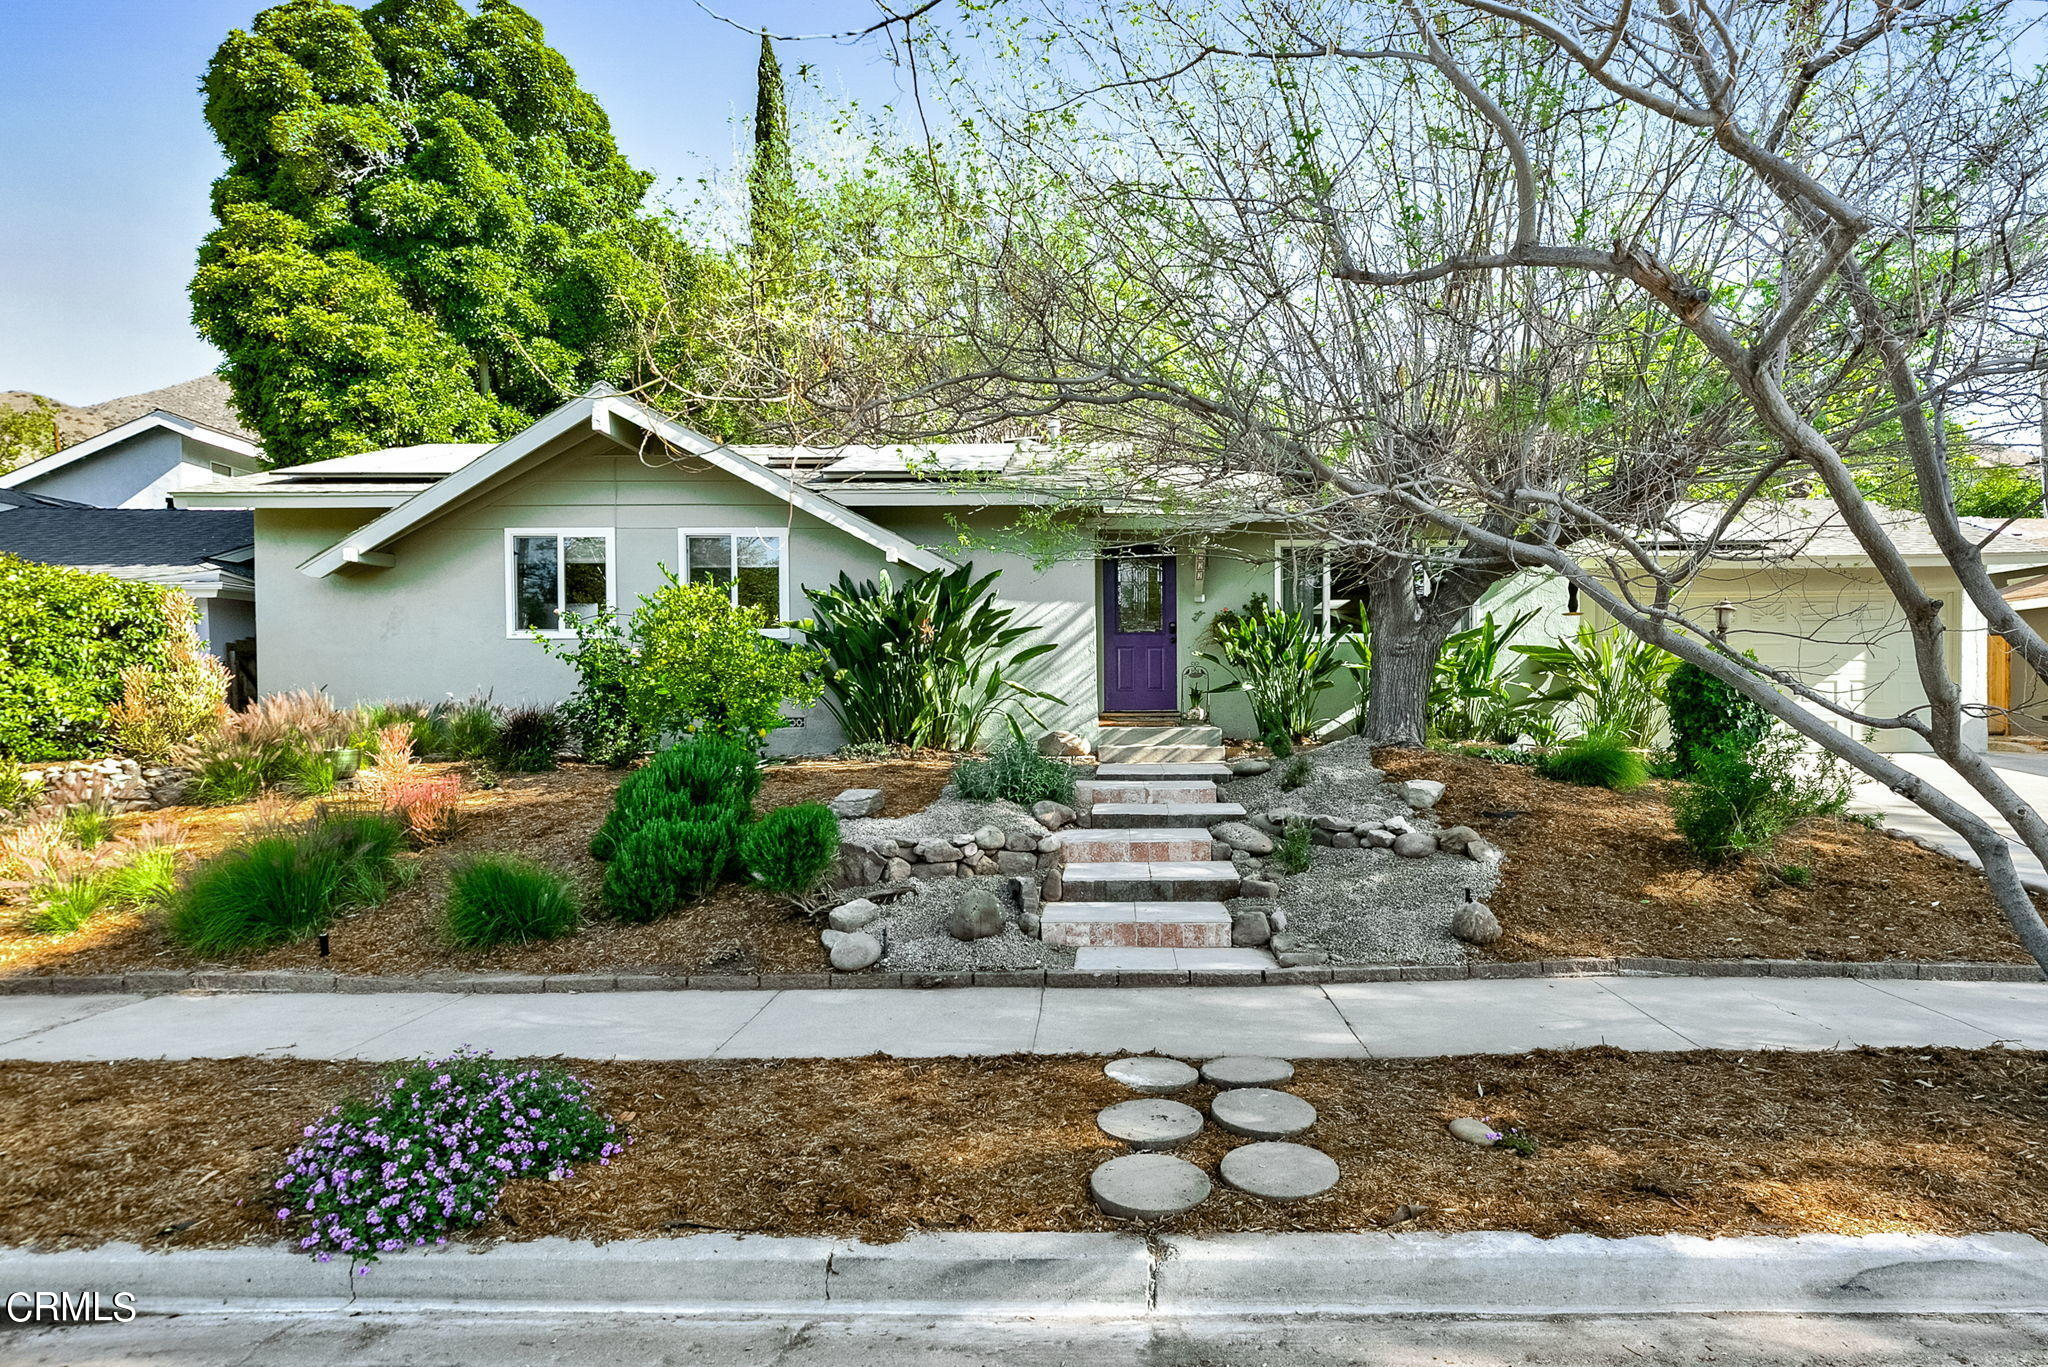 922 Pleasant Avenue, Ojai, California 93023, 3 Bedrooms Bedrooms, ,2 BathroomsBathrooms,Single Family,For Sale,922 Pleasant Avenue,1,V1-5275